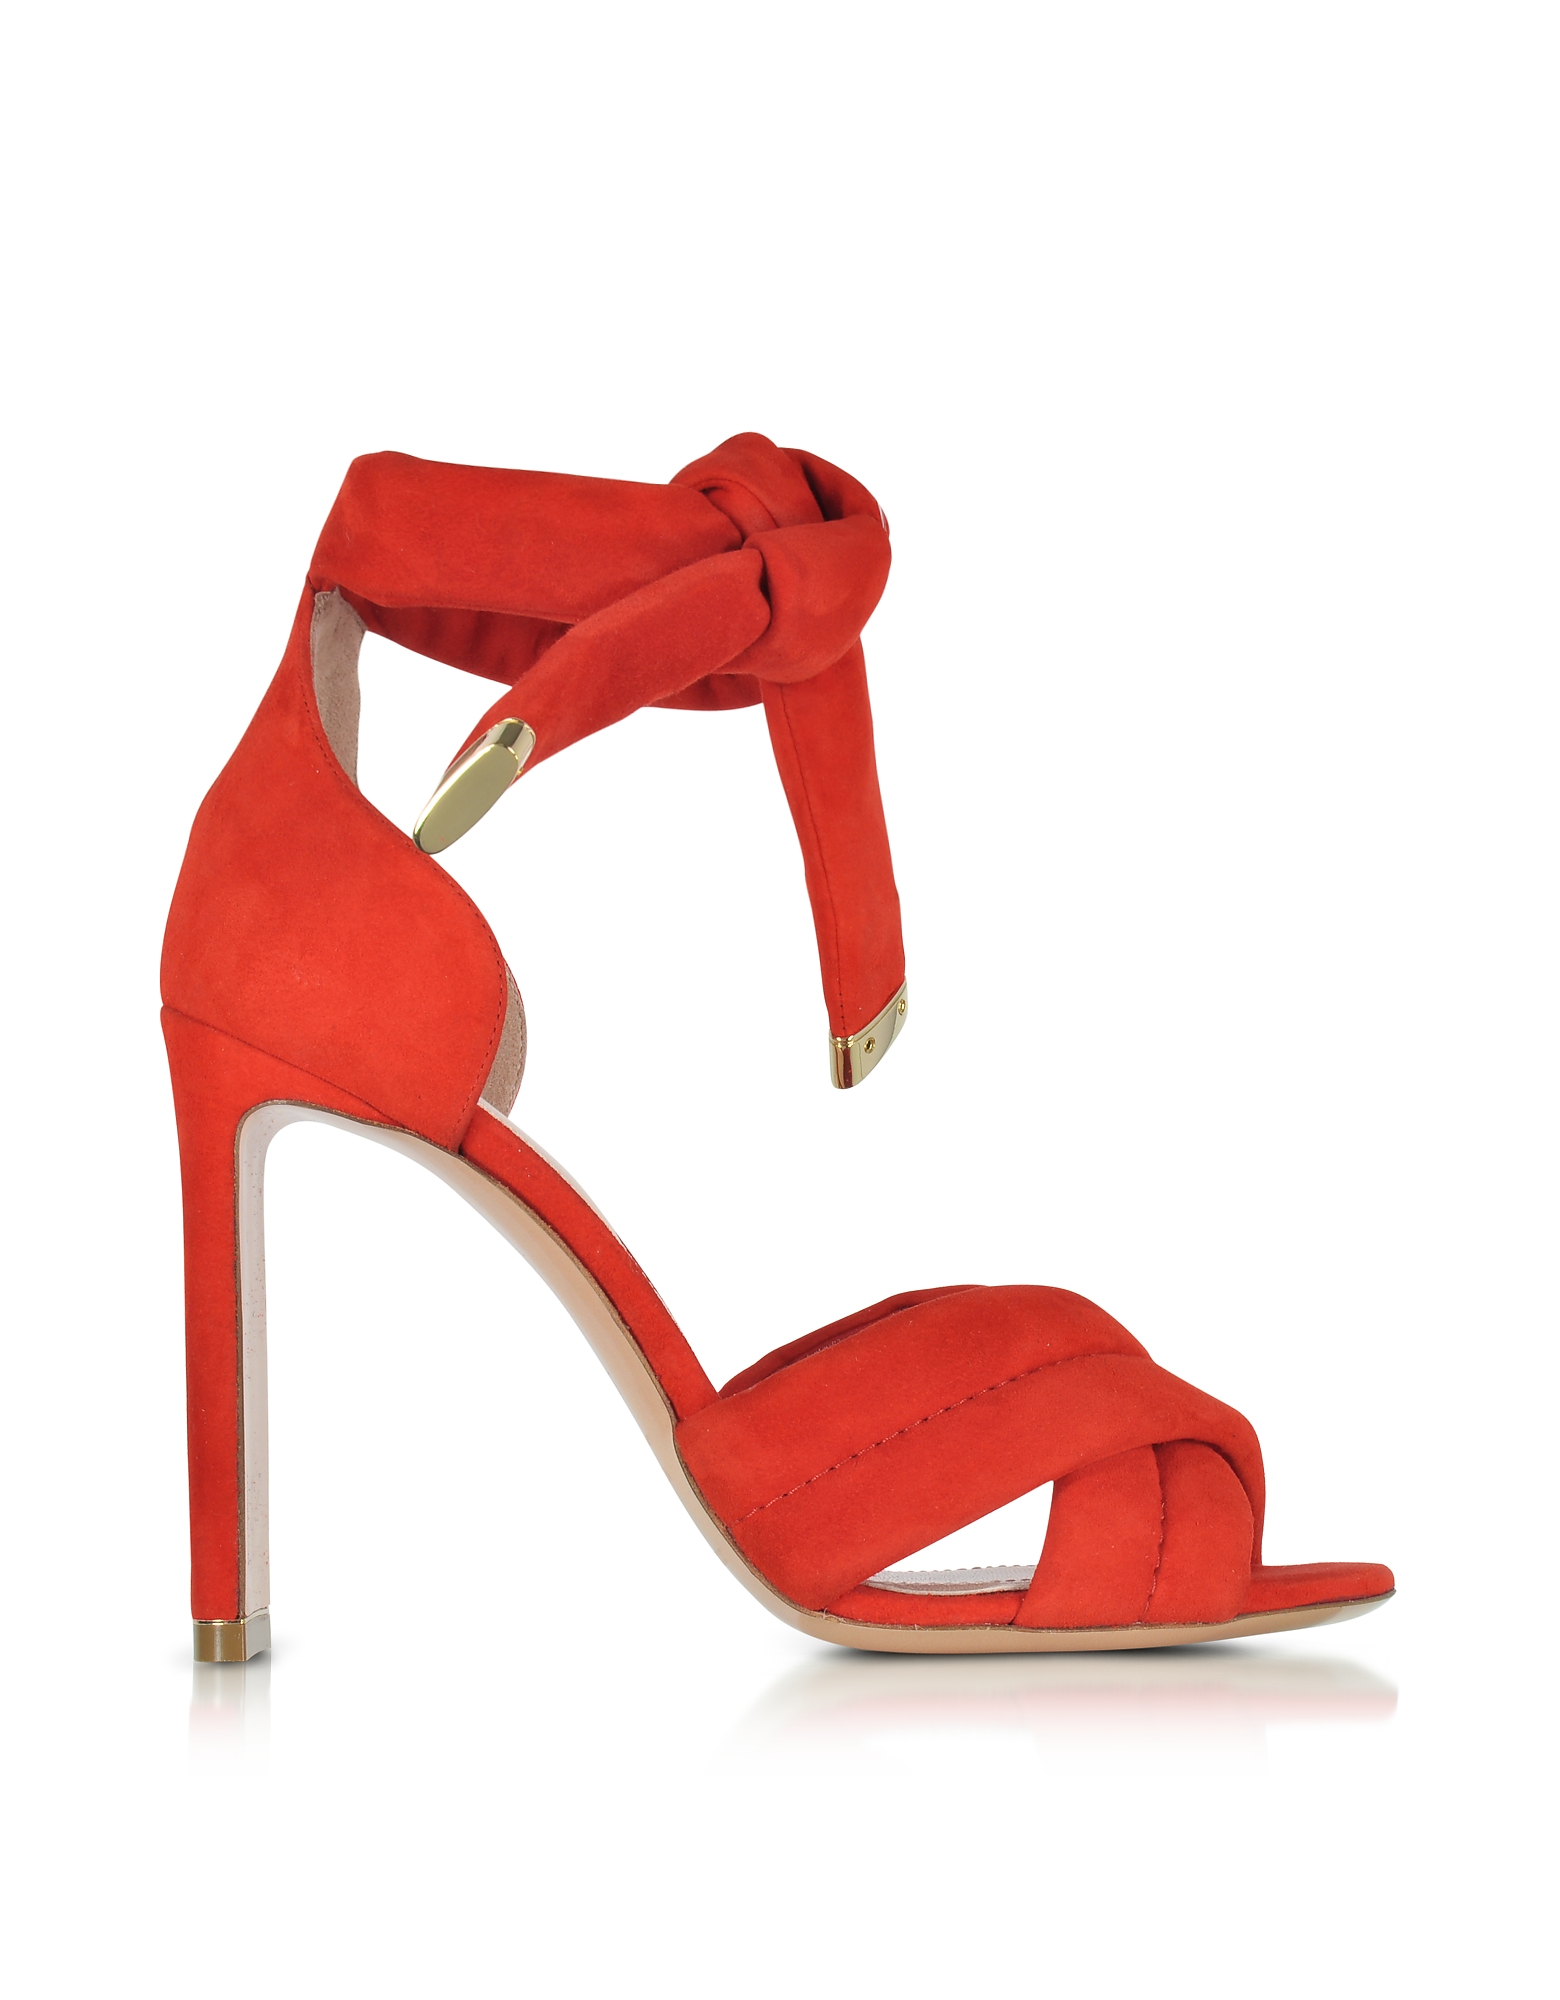 Nicholas Kirkwood Shoes, Ziggy Coral Red Suede Sandal